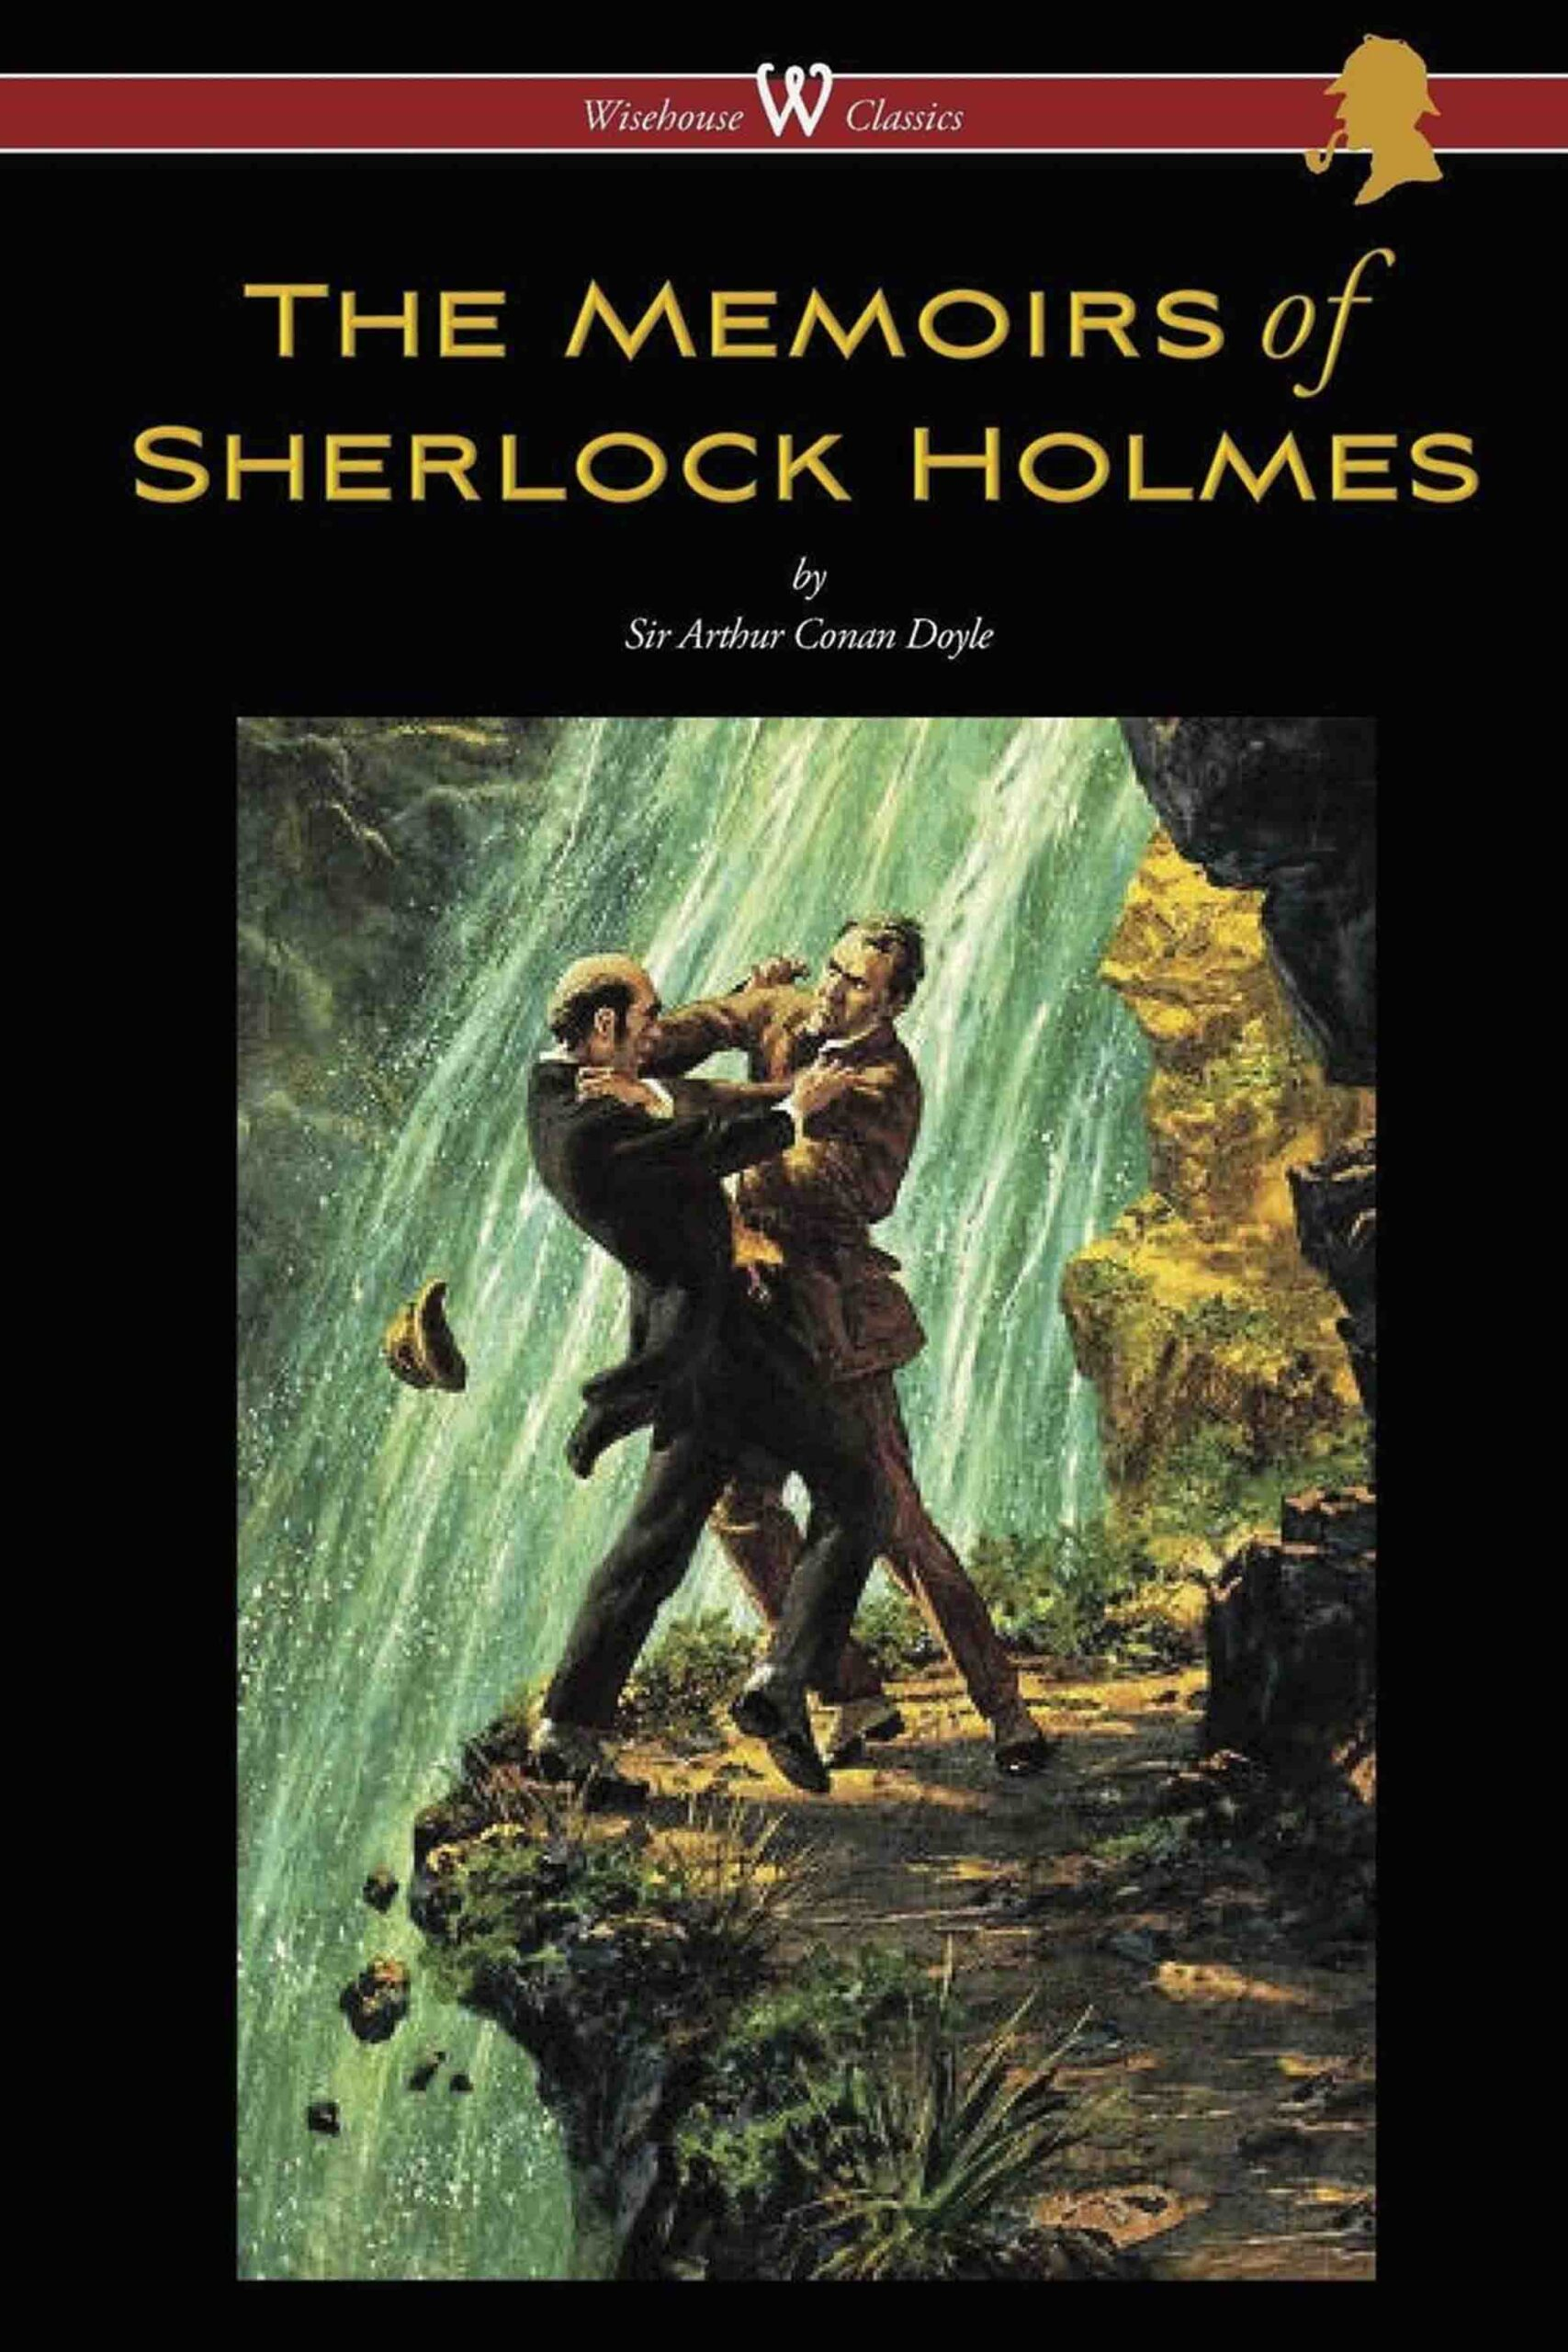 The Memoirs of Sherlock Holmes (Wisehouse Classics Edition – With Original Illustrations by Sidney Paget)